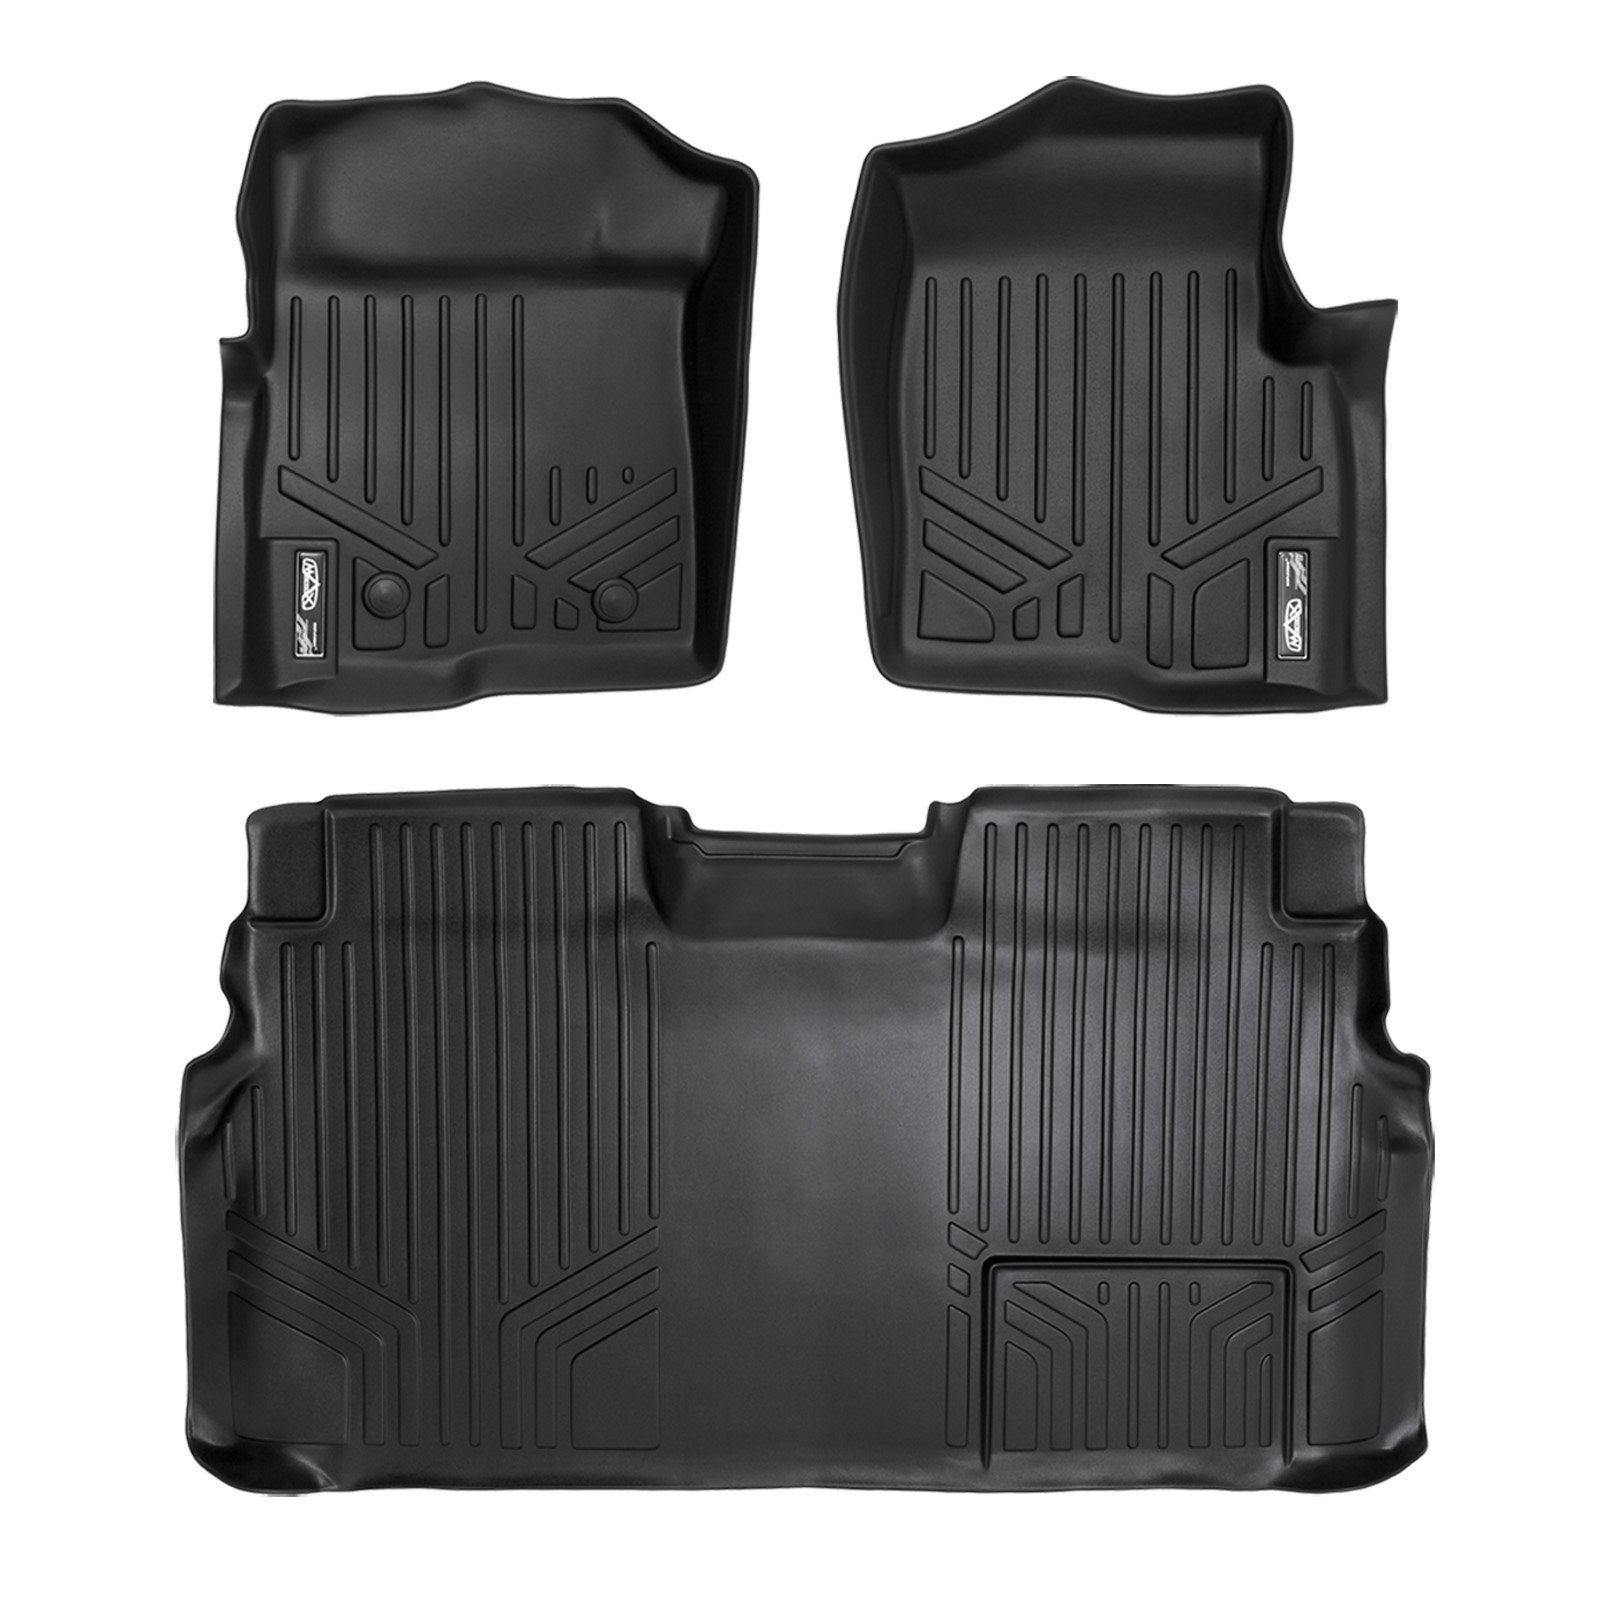 SMARTLINER Floor Mats 2 Row Liner Set Black for 2011-2014 Ford F-150 SuperCrew Cab